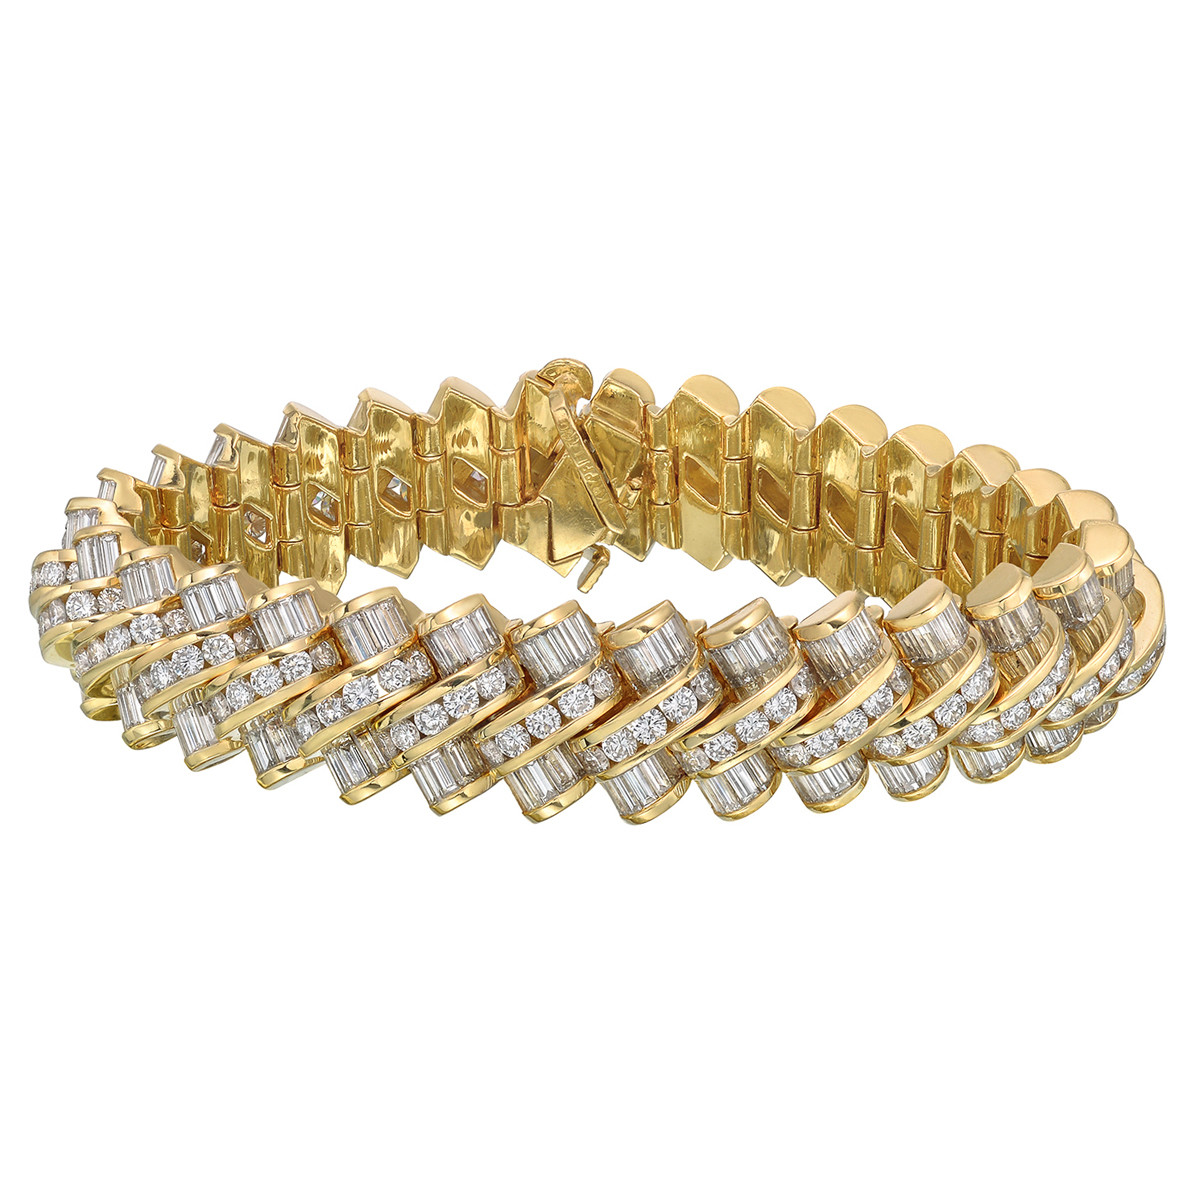 Krypell 18k Yellow Gold & Diamond Bracelet